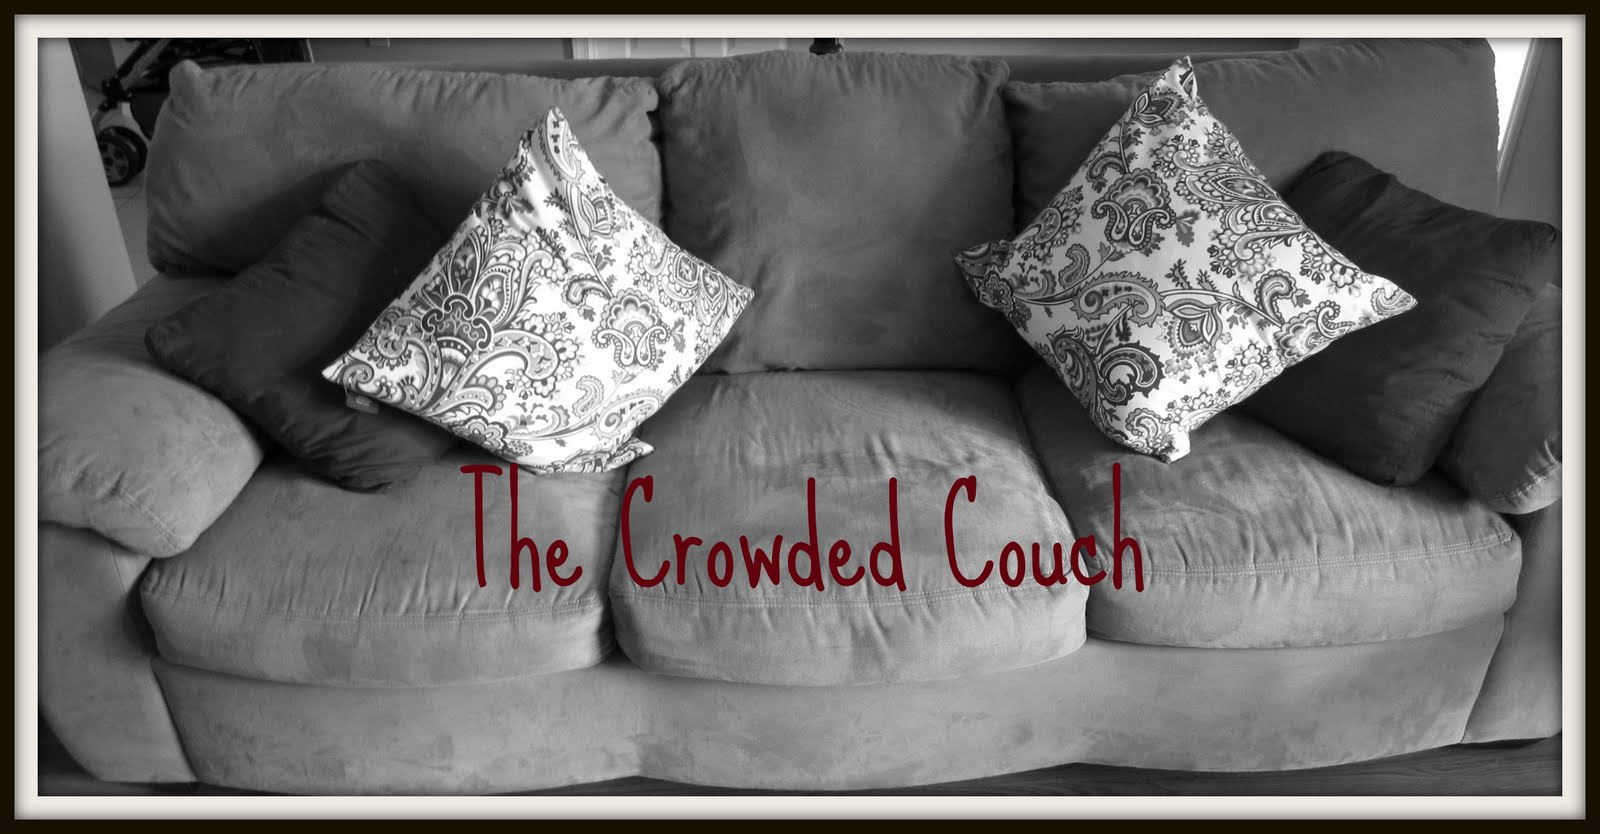 The Crowded Couch